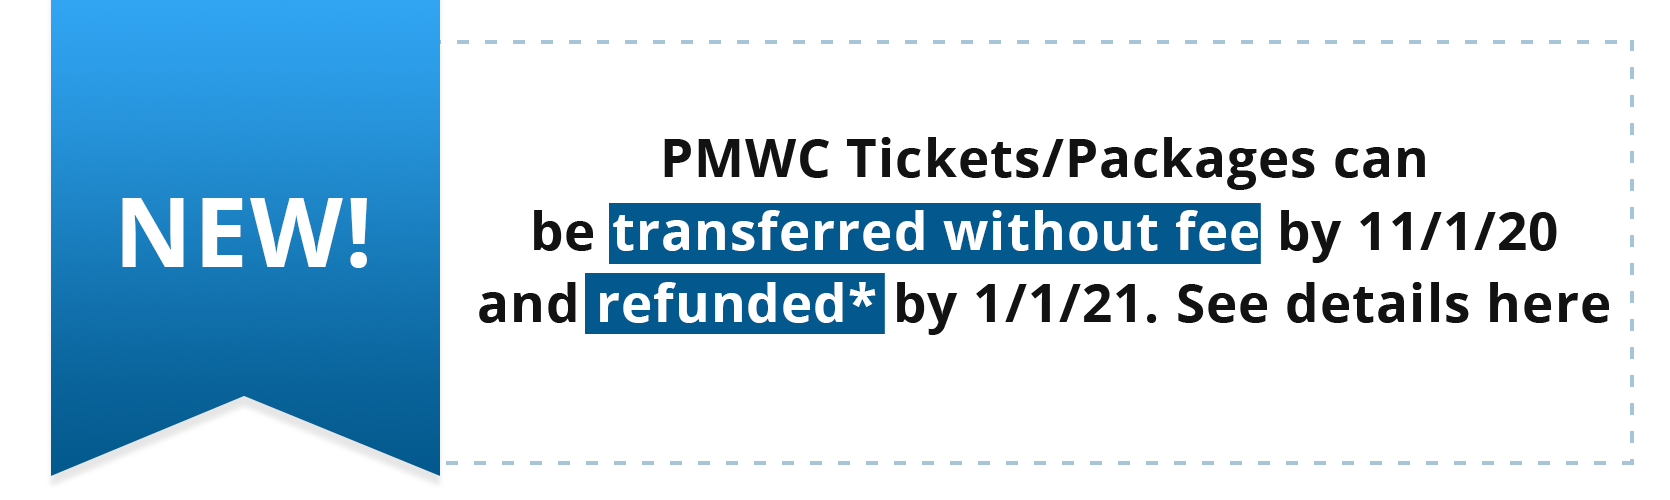 Refund/Transfer Policy New2021sv. Make background #ffffff00 and press update to solve